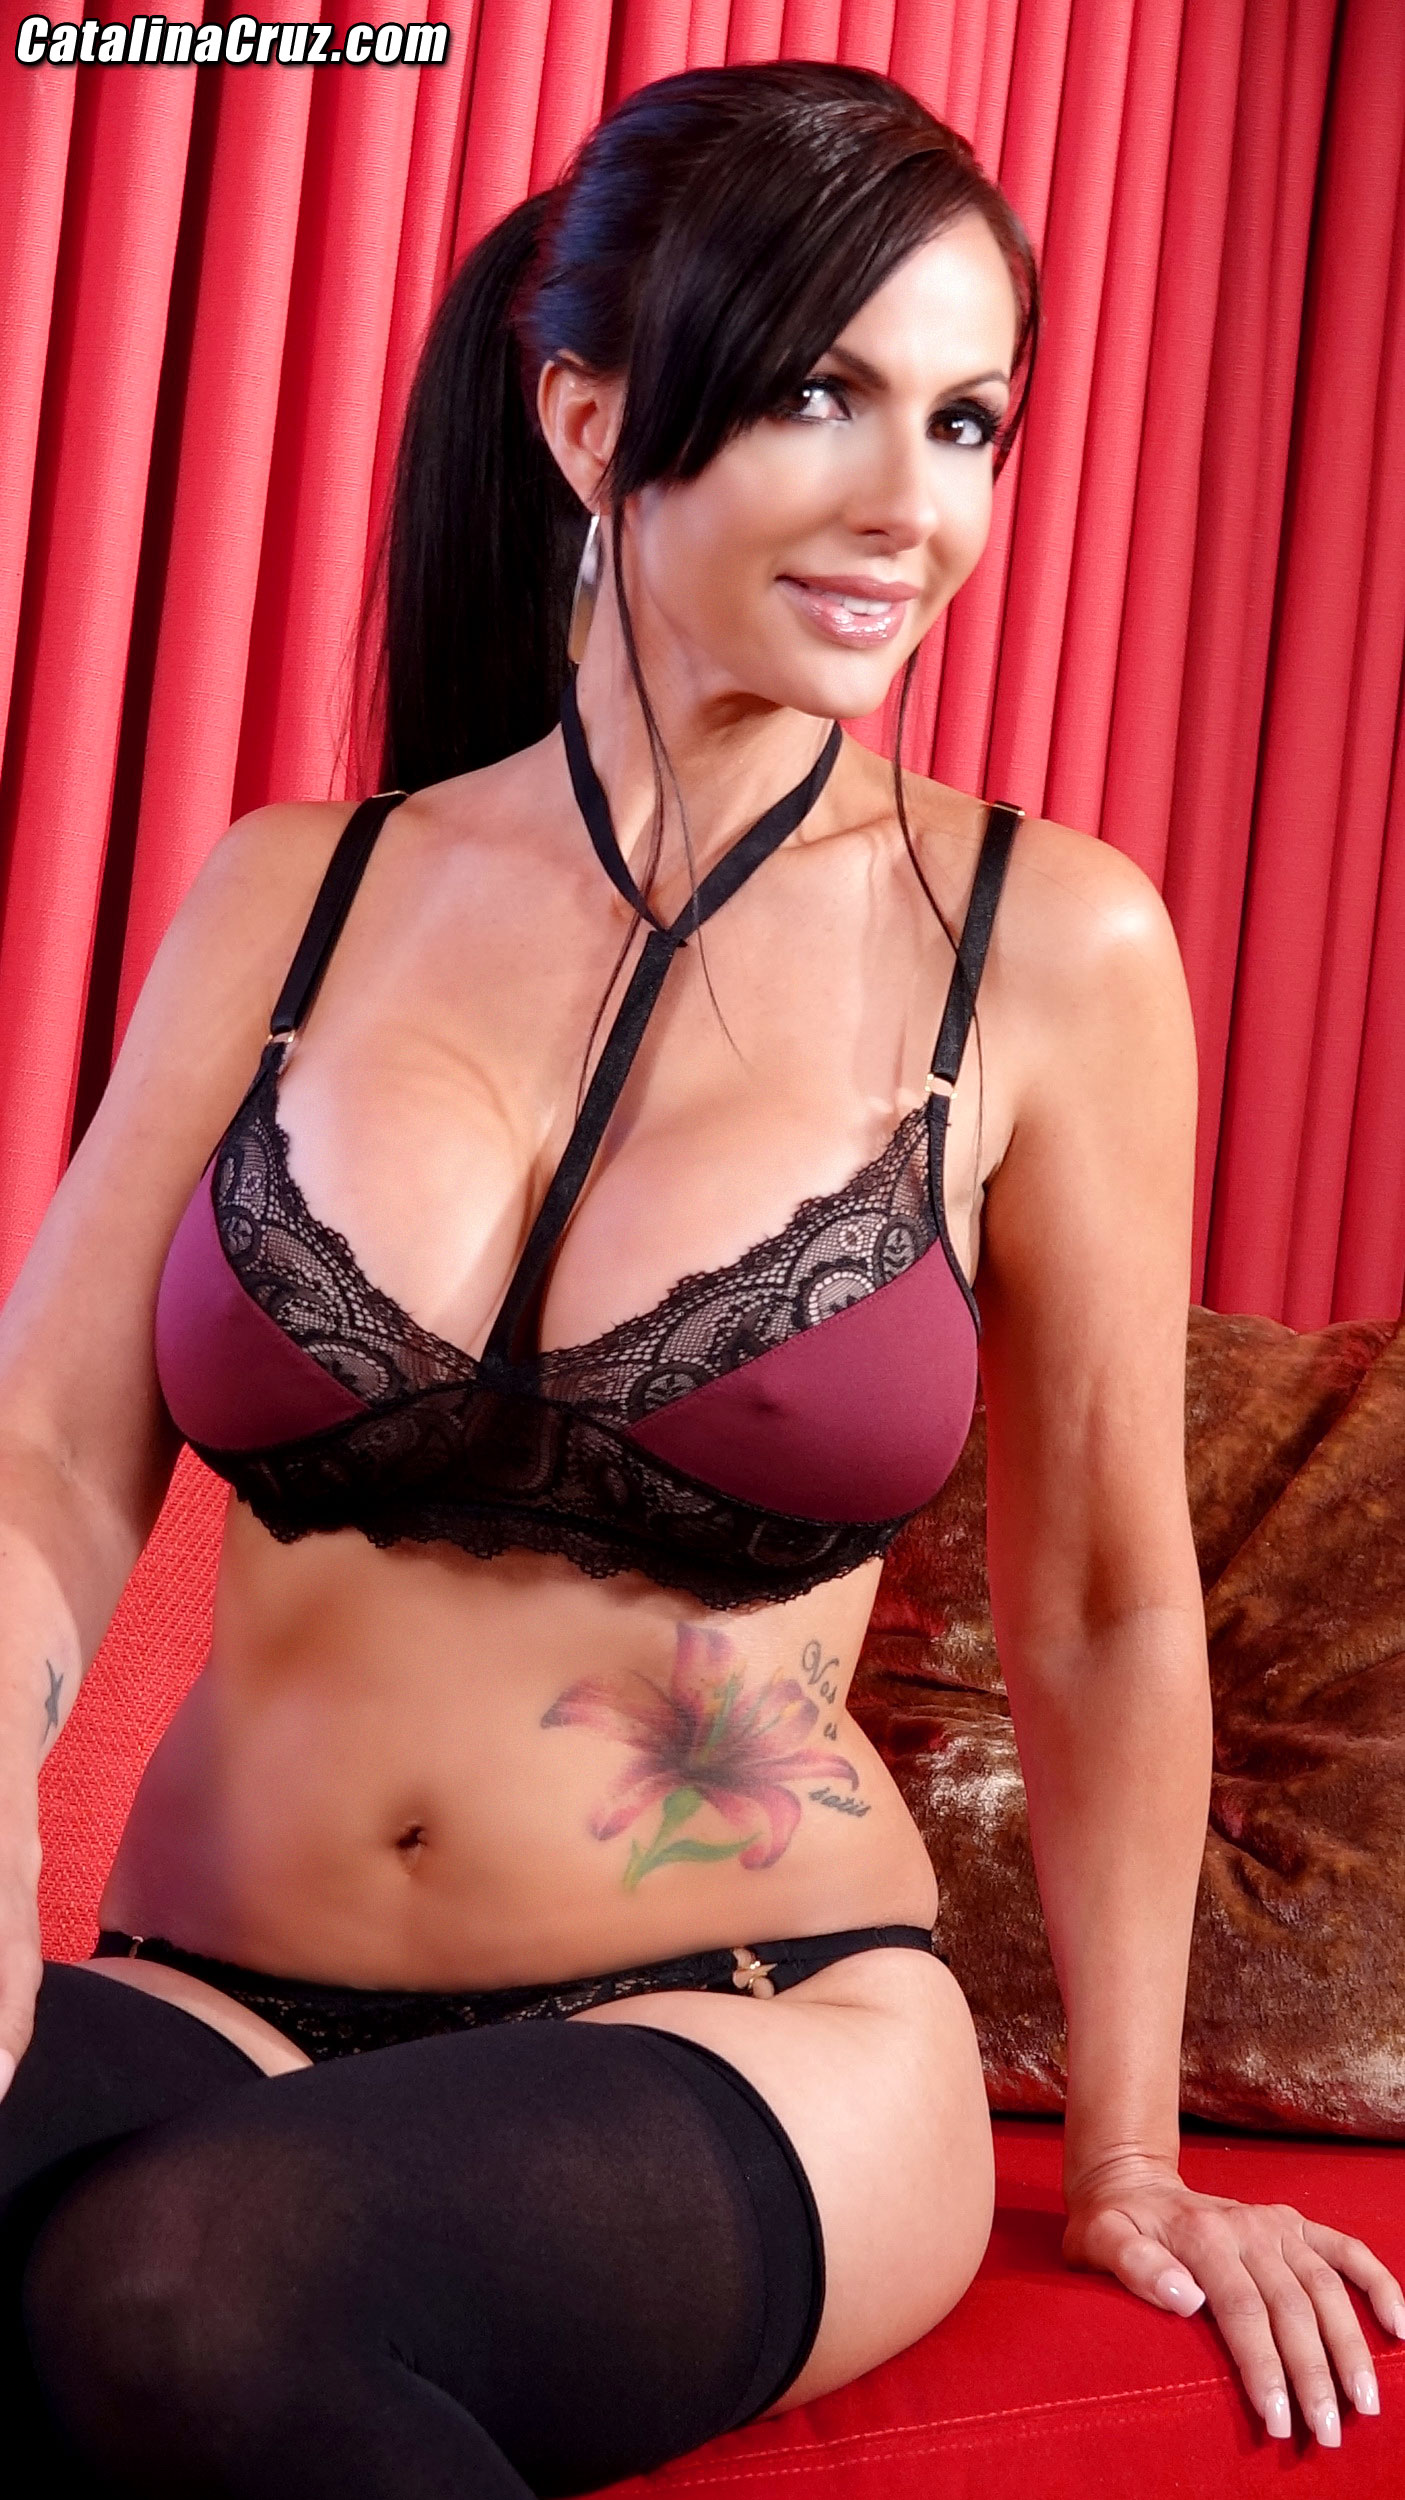 Catalina Cruz Huge Tits Maroon Bra and Stockings